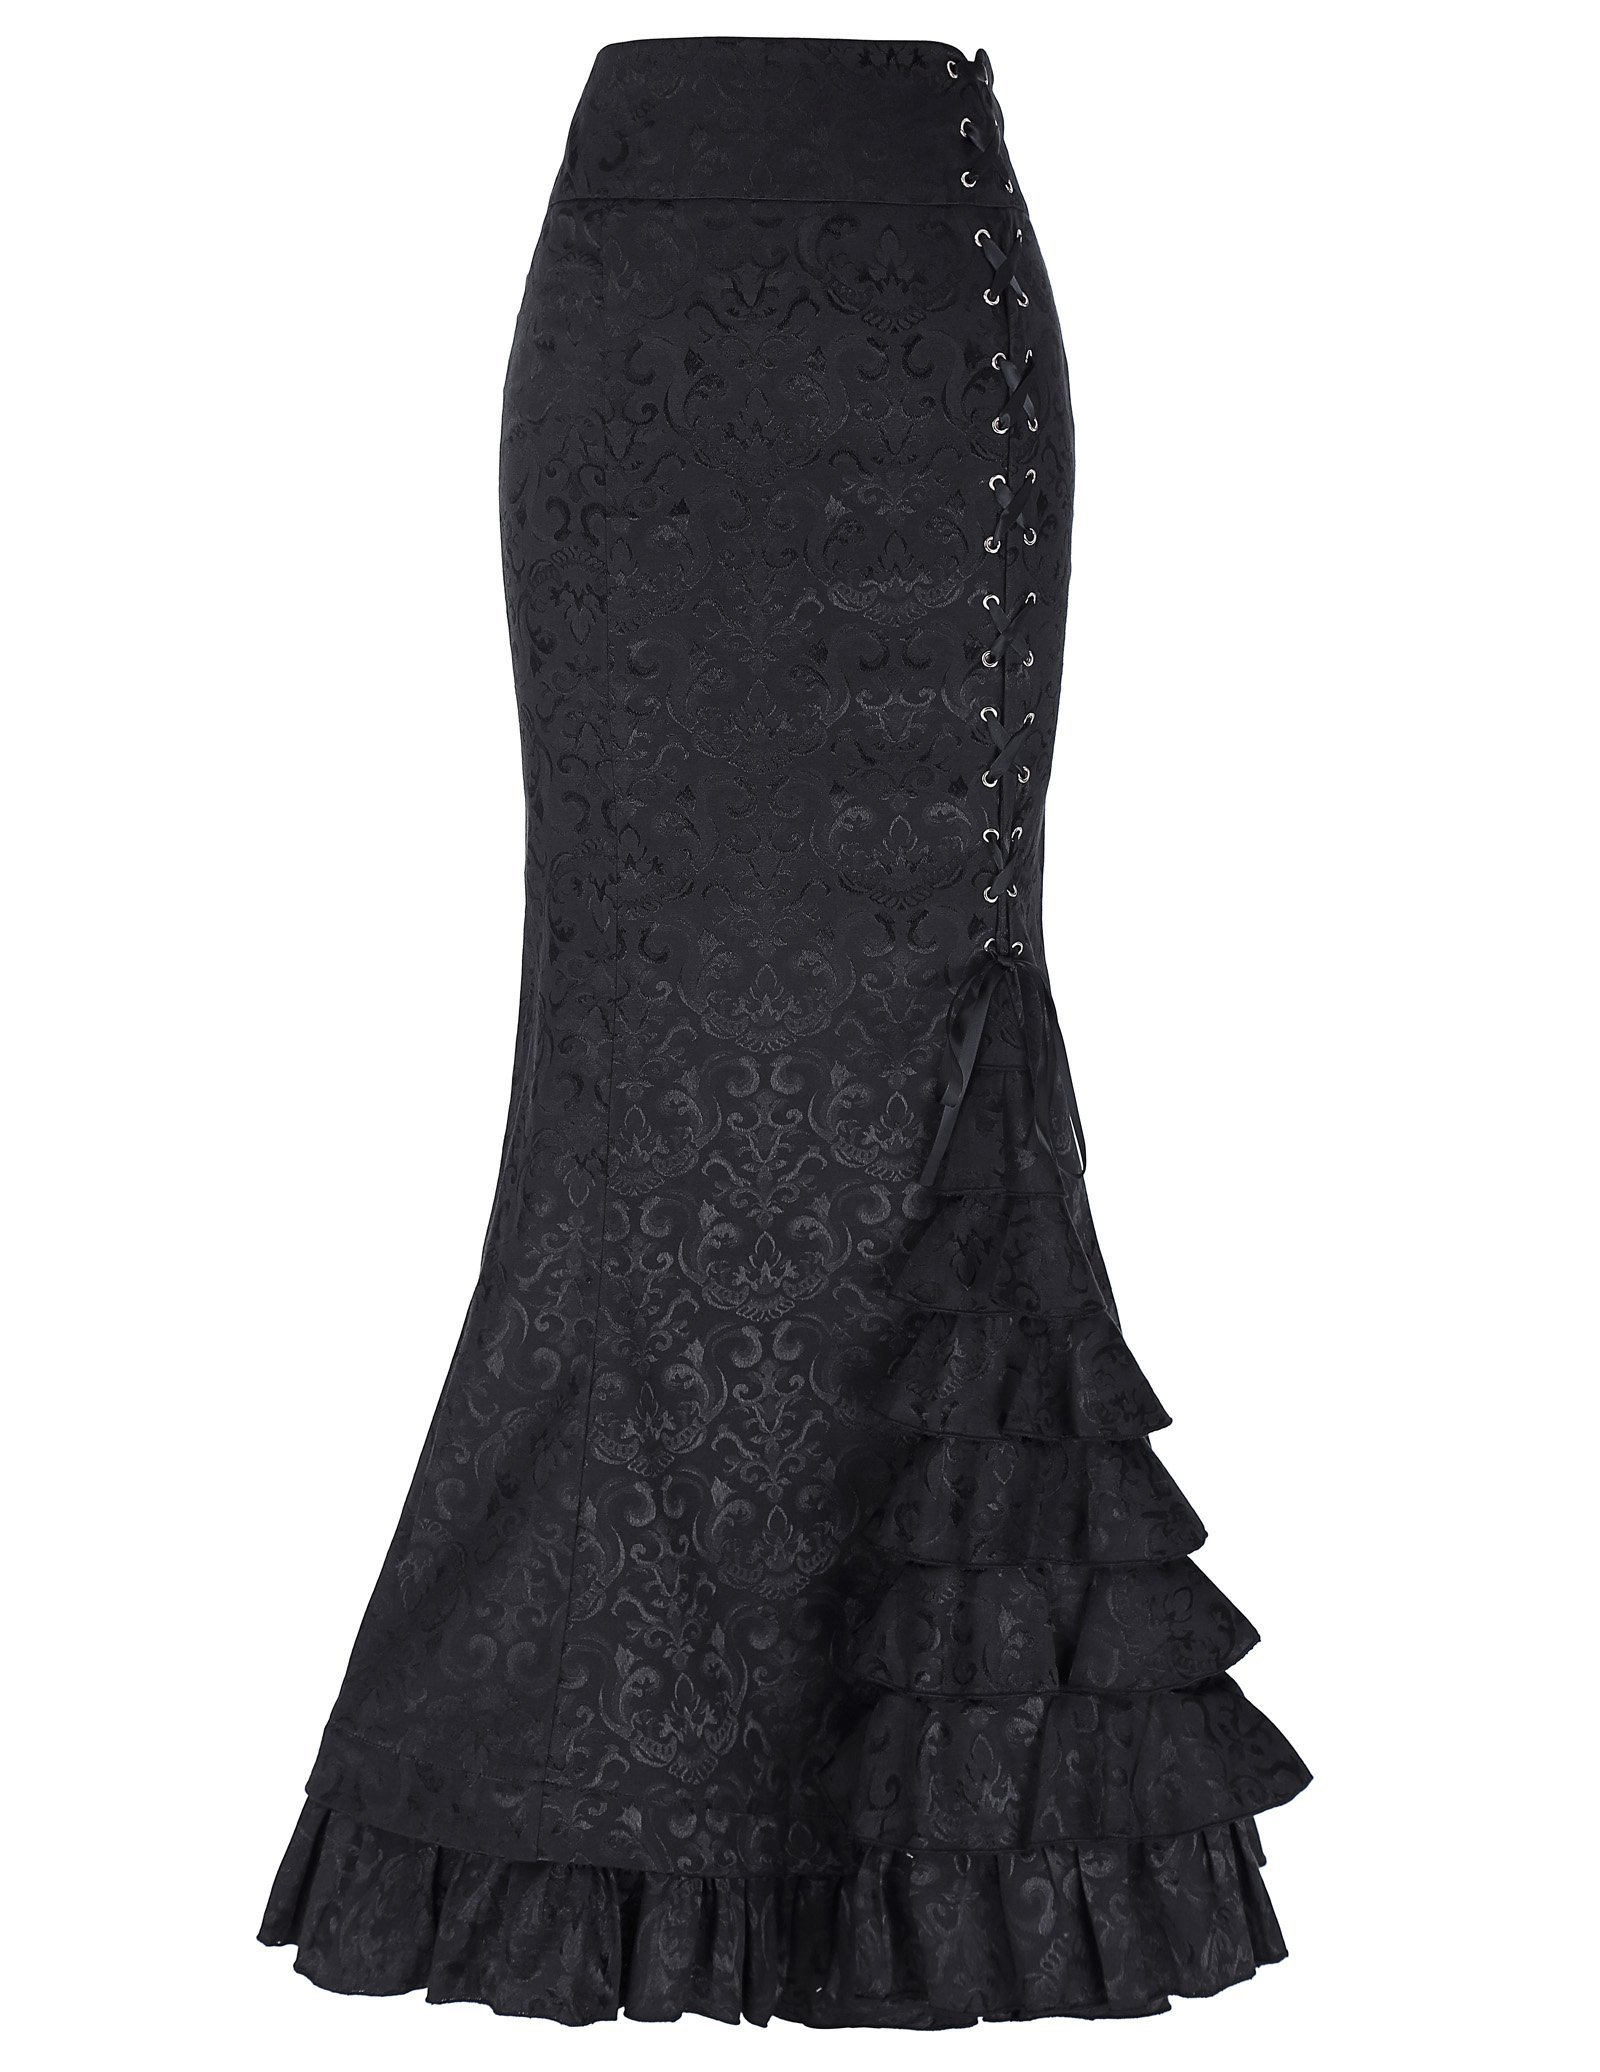 Belle Poque London- Victorian Gothic Ruffle Steampunk Vintage Fishtail Skirt 3